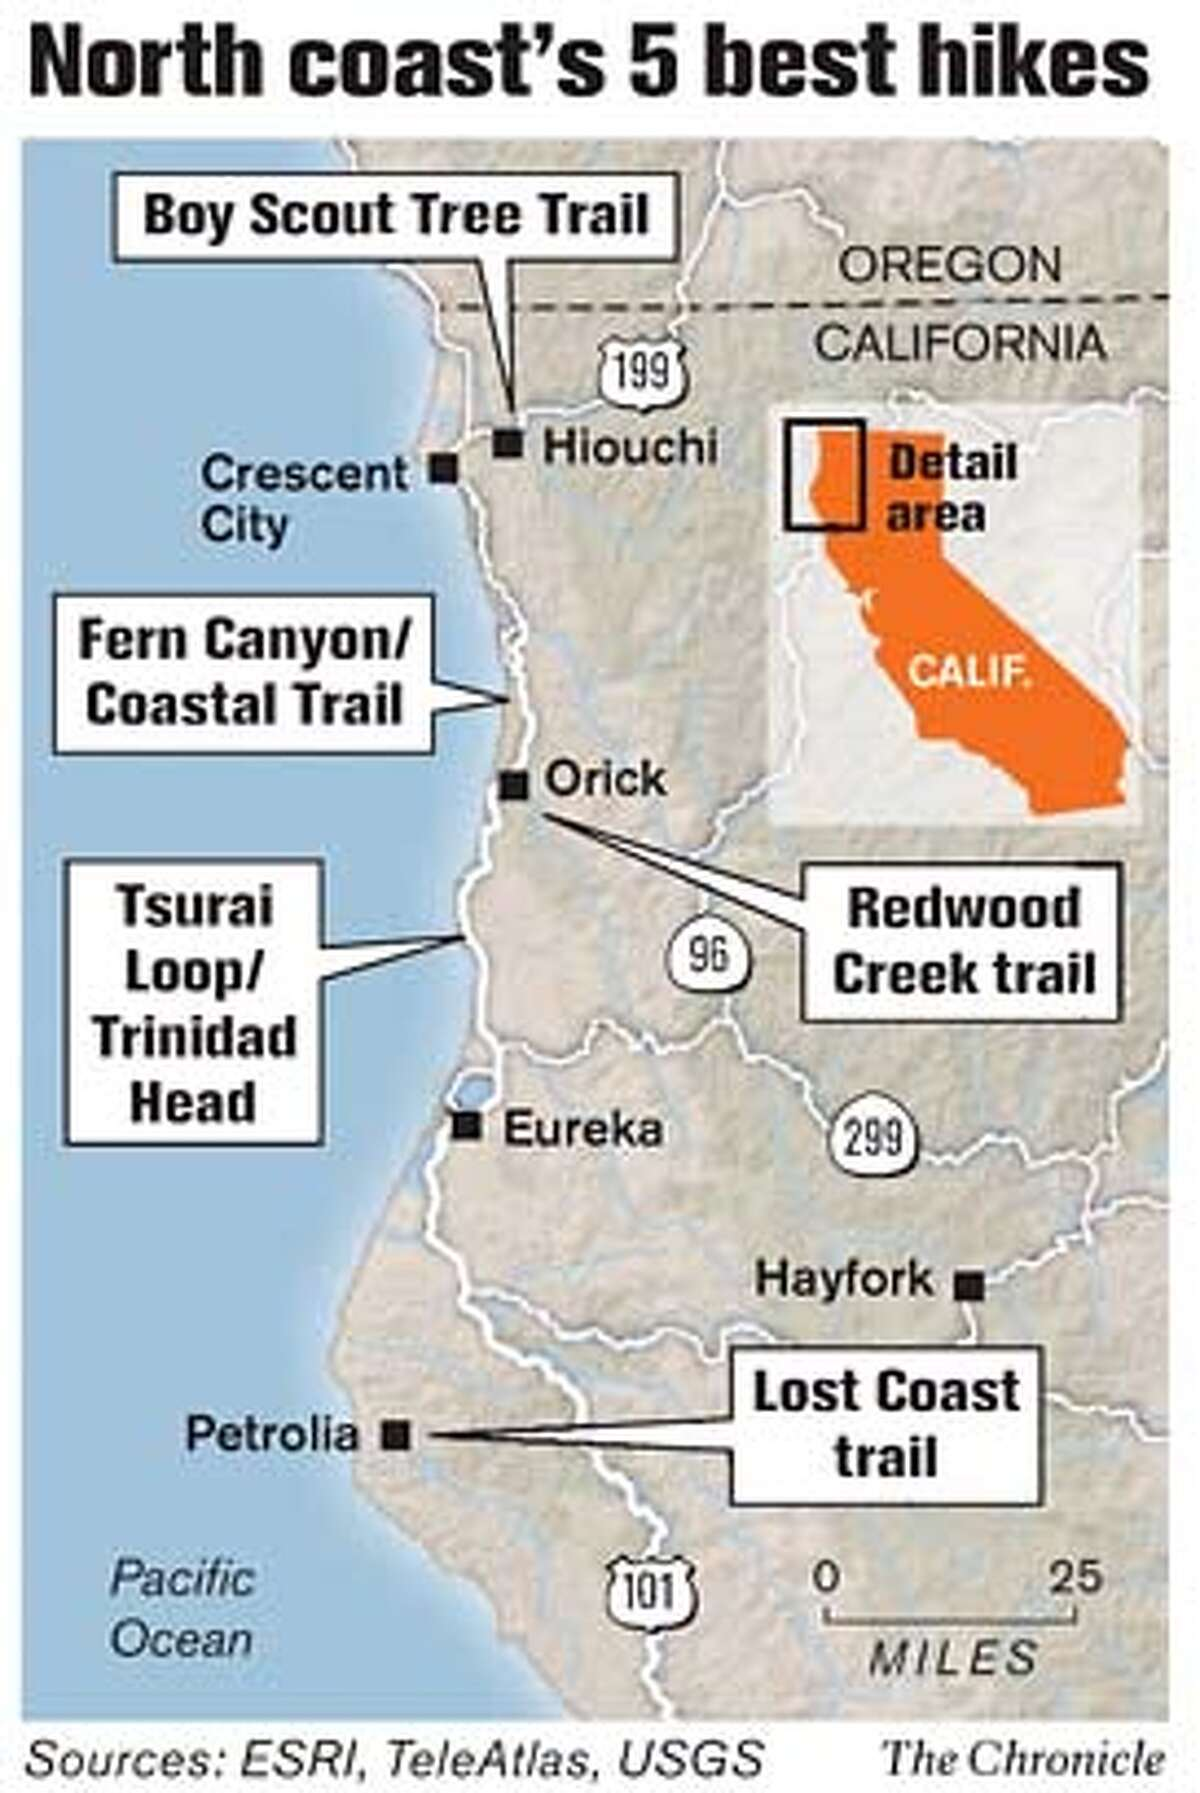 North Coast's 5 Best Hikes. Chronicle Graphic